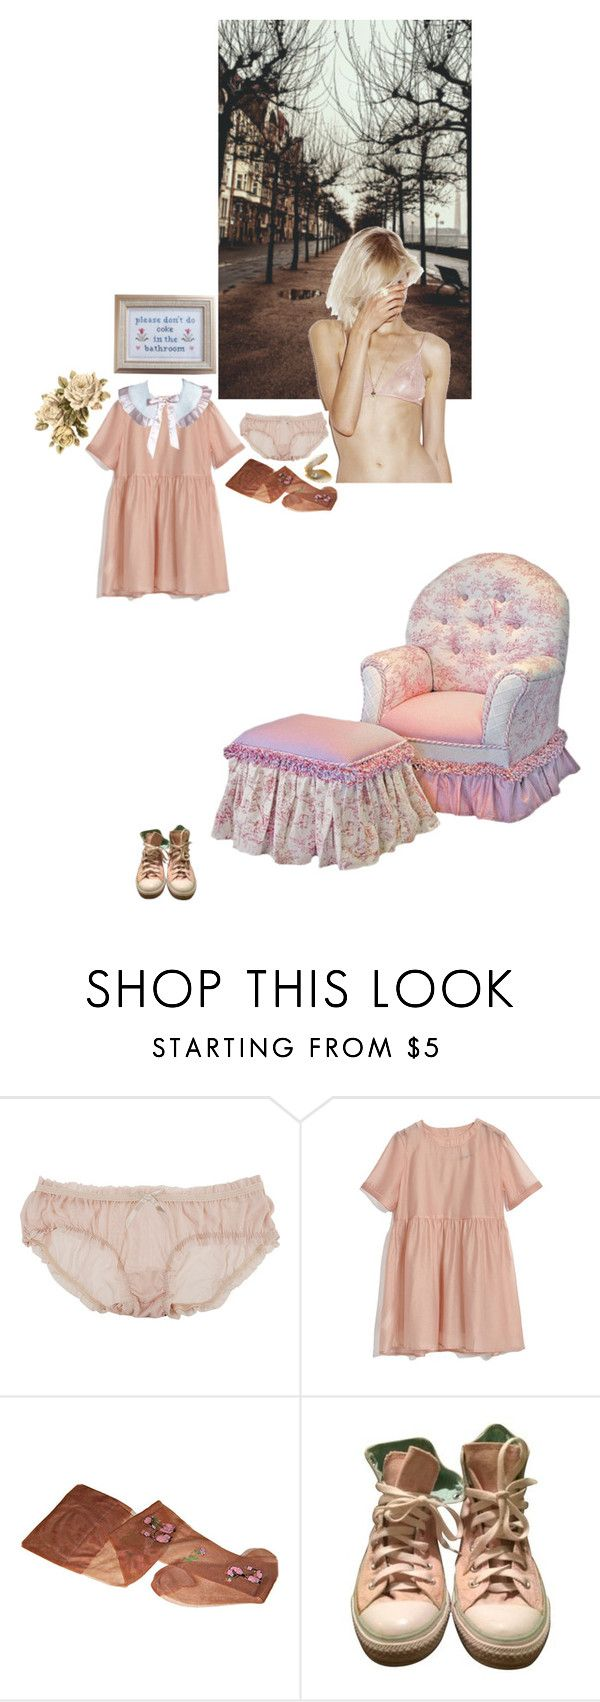 """harsh words"" by mermaid-nielsine ❤ liked on Polyvore featuring Forever 21, Converse, Pink, pale, rose and tender"